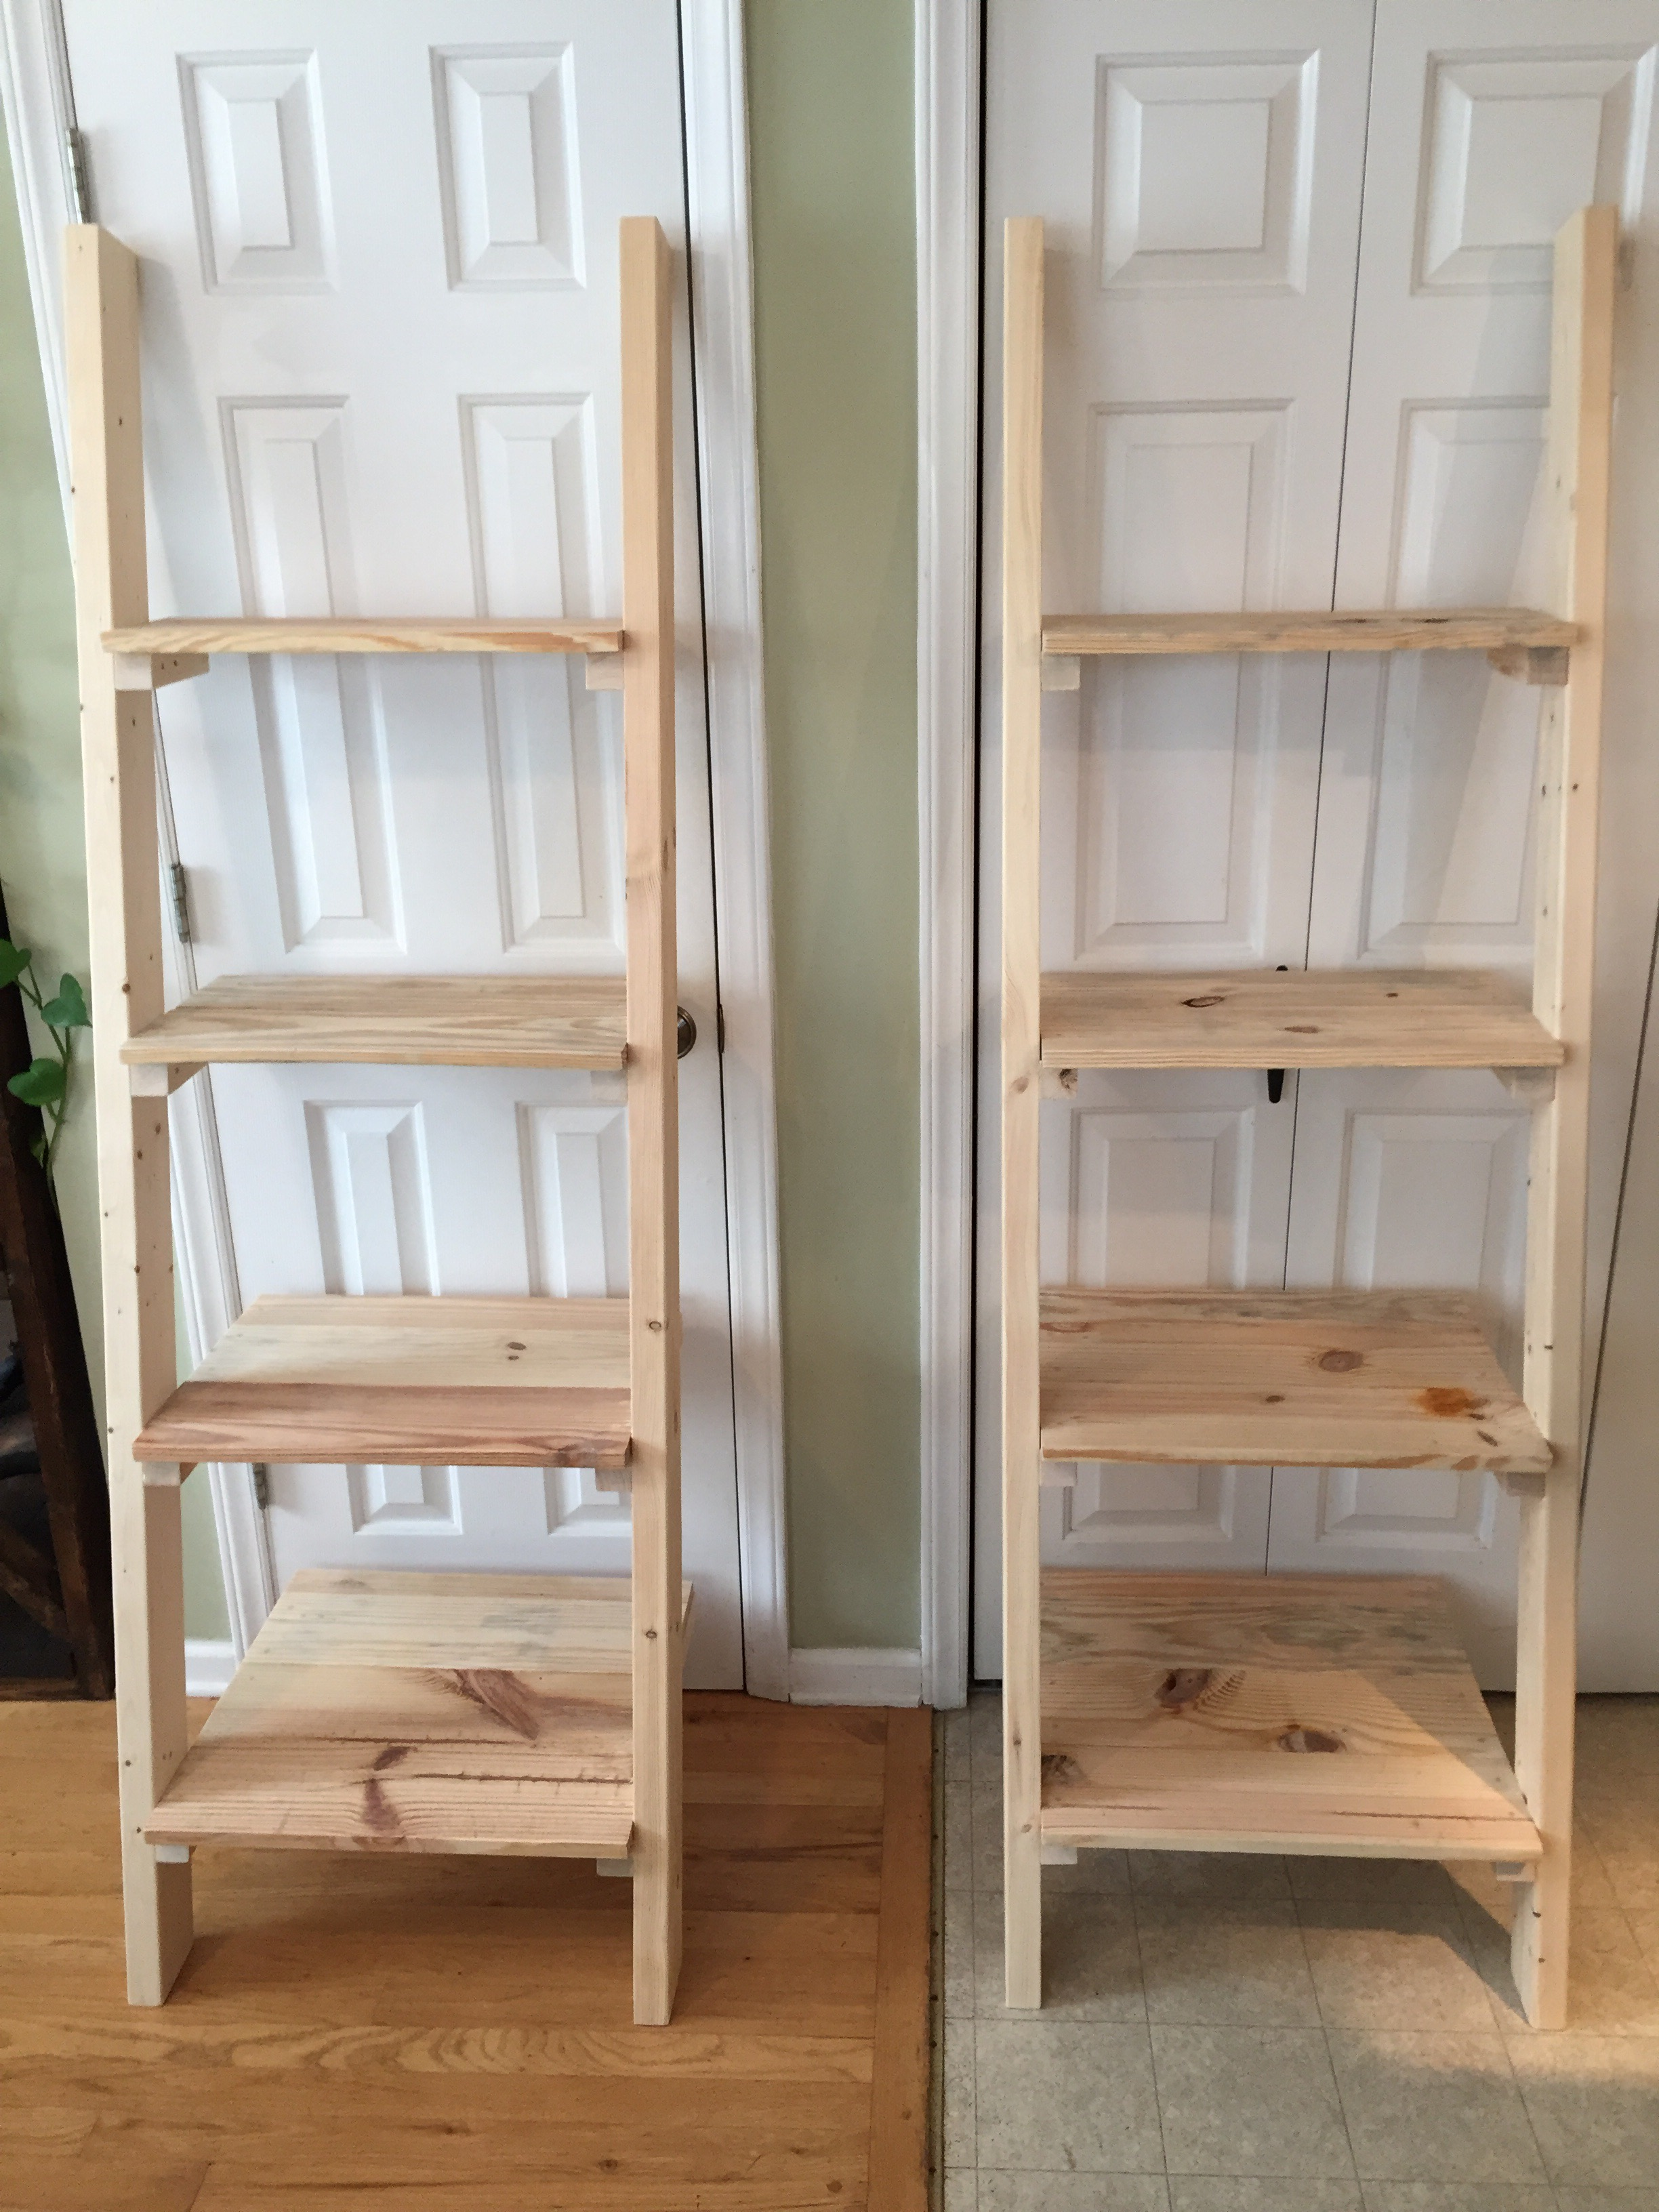 leaning ladder of build it s vintage book or top view shelf buy marsh yellow down heidi wooden in